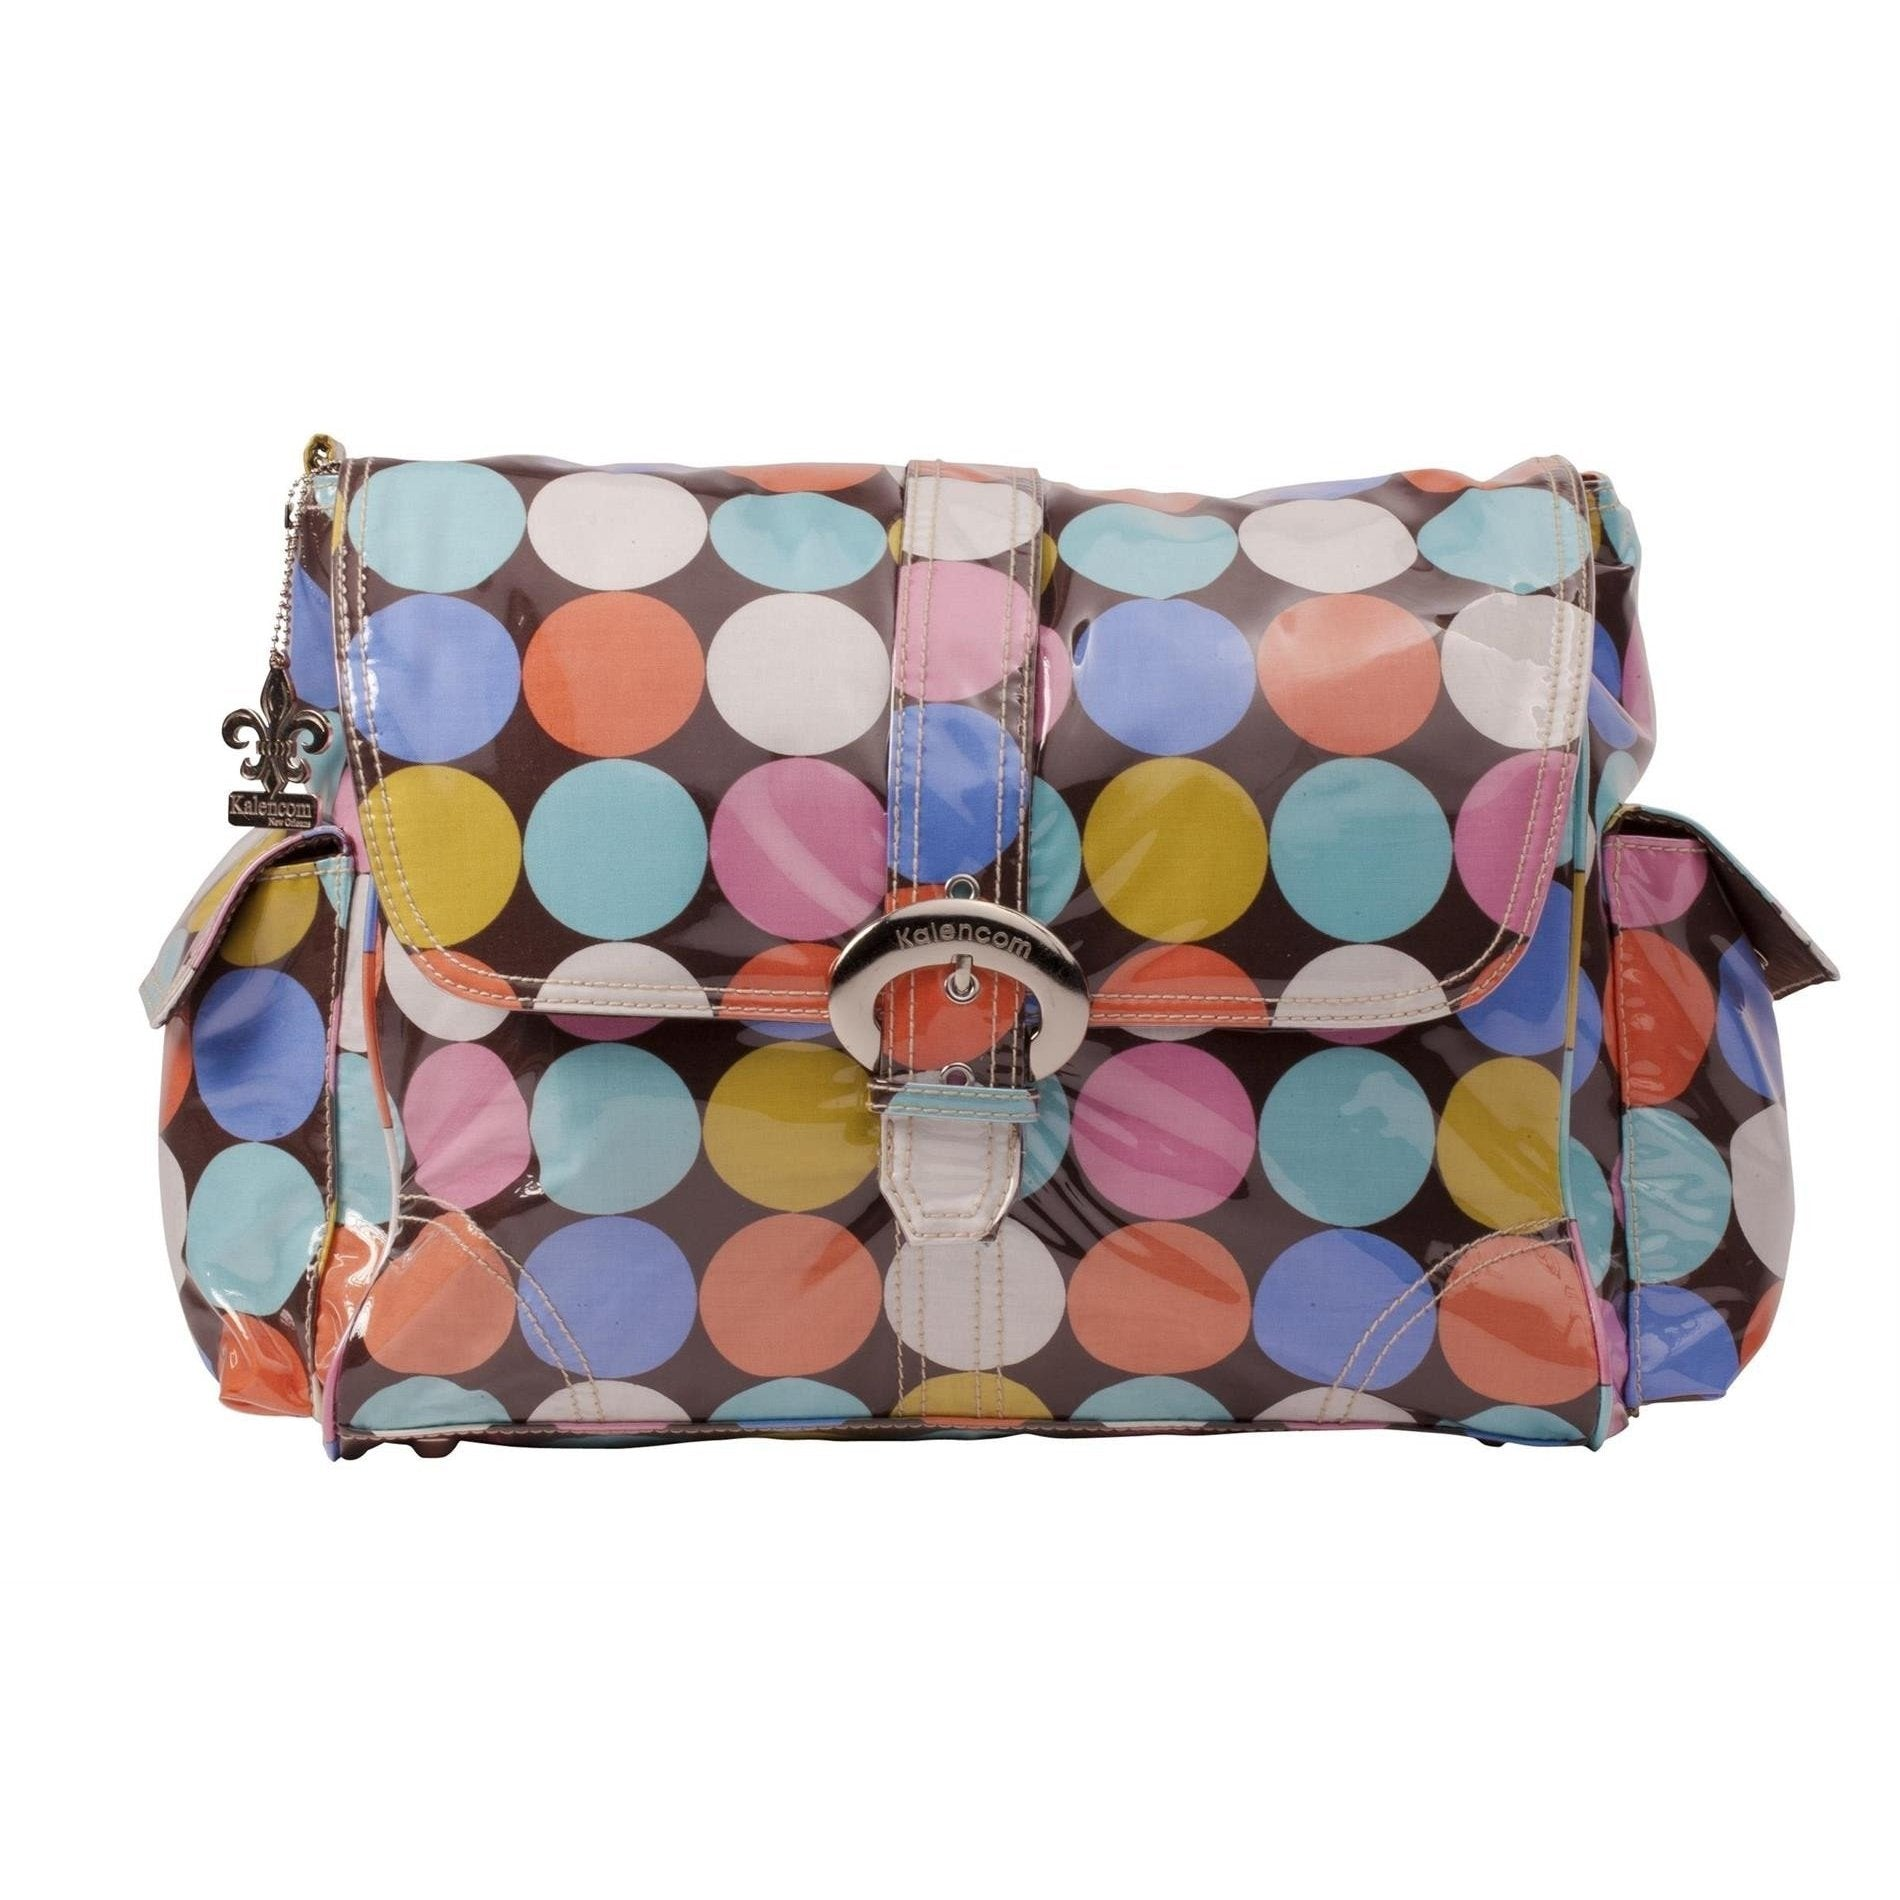 Disco Dots Cocoa Laminated Buckle Diaper Bag | Style 2960 - Kalencom-Diaper Bags-Jack and Jill Boutique